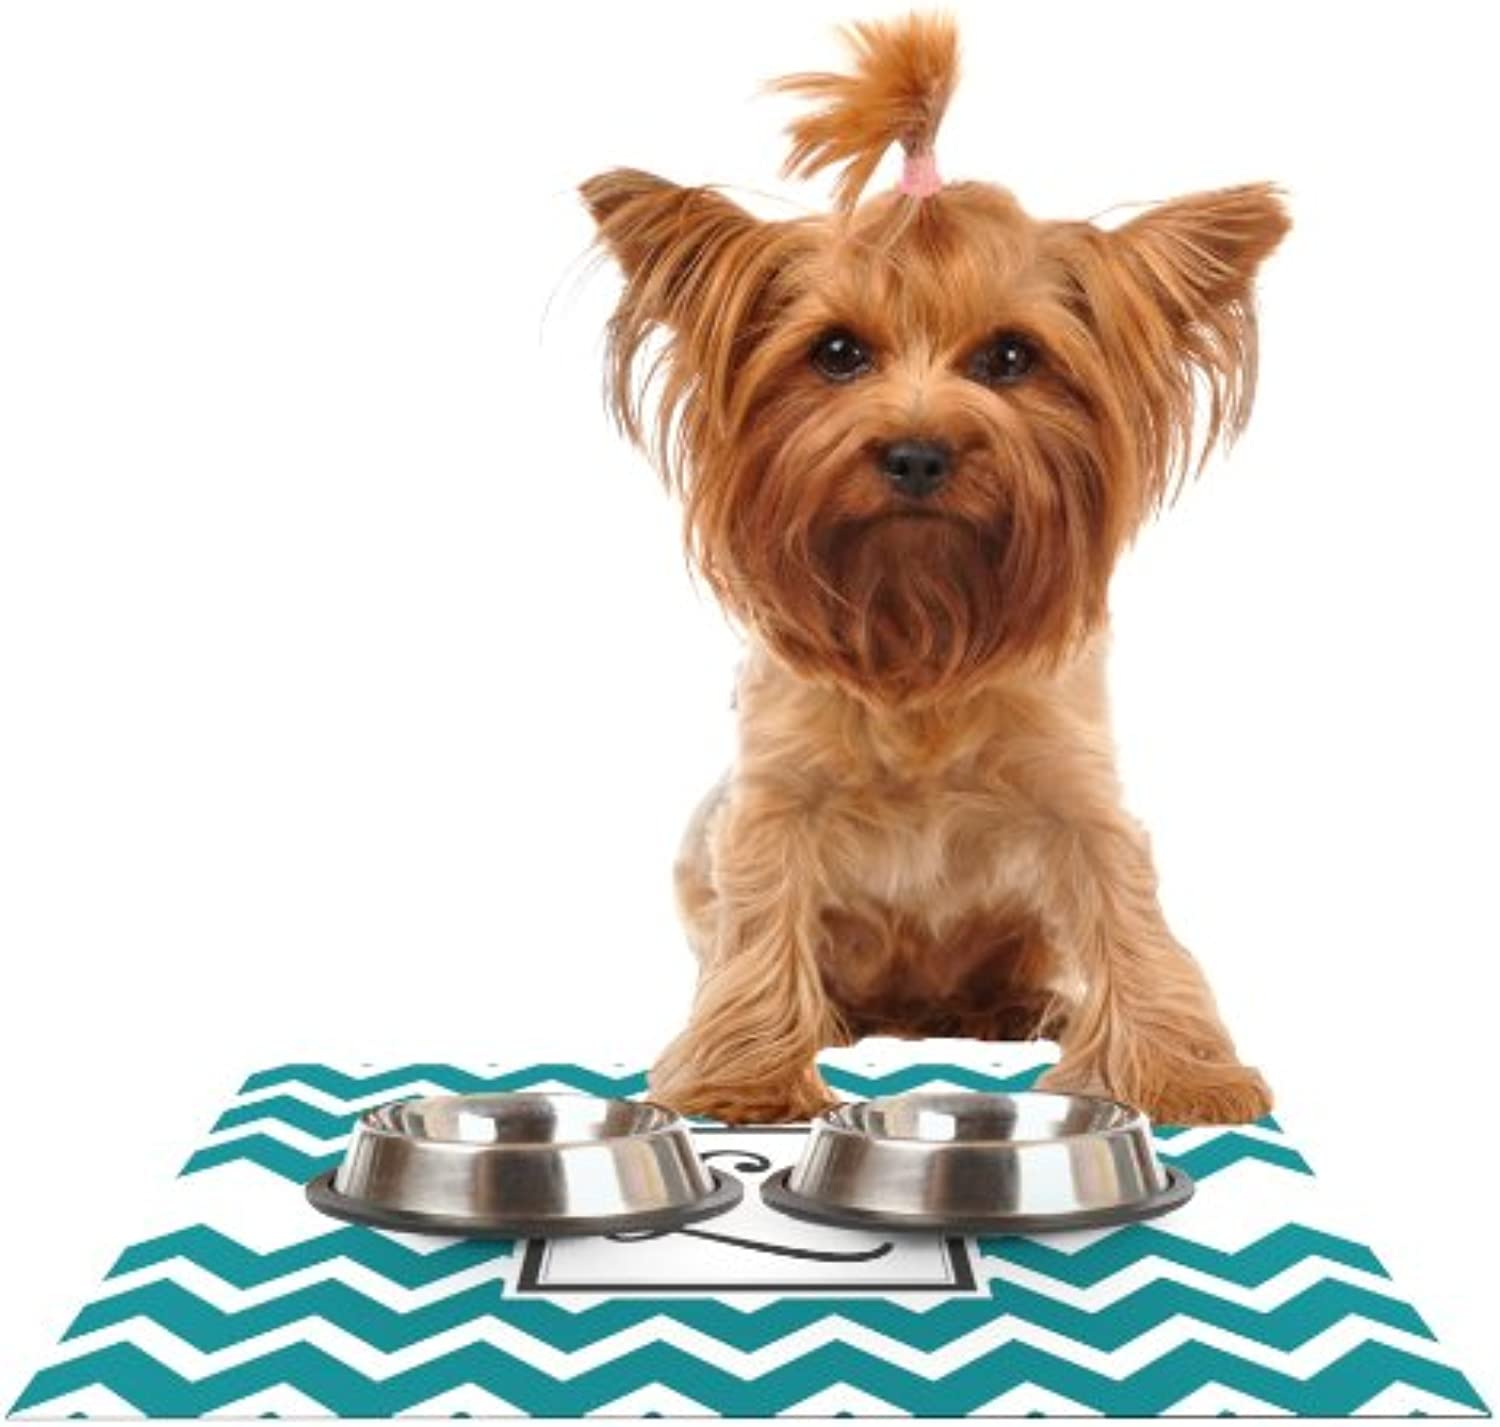 KESS InHouse KESS Original Monogram Chevron Teal Letter L  Feeding Mat for Pet Bowl, 24 by 15Inch